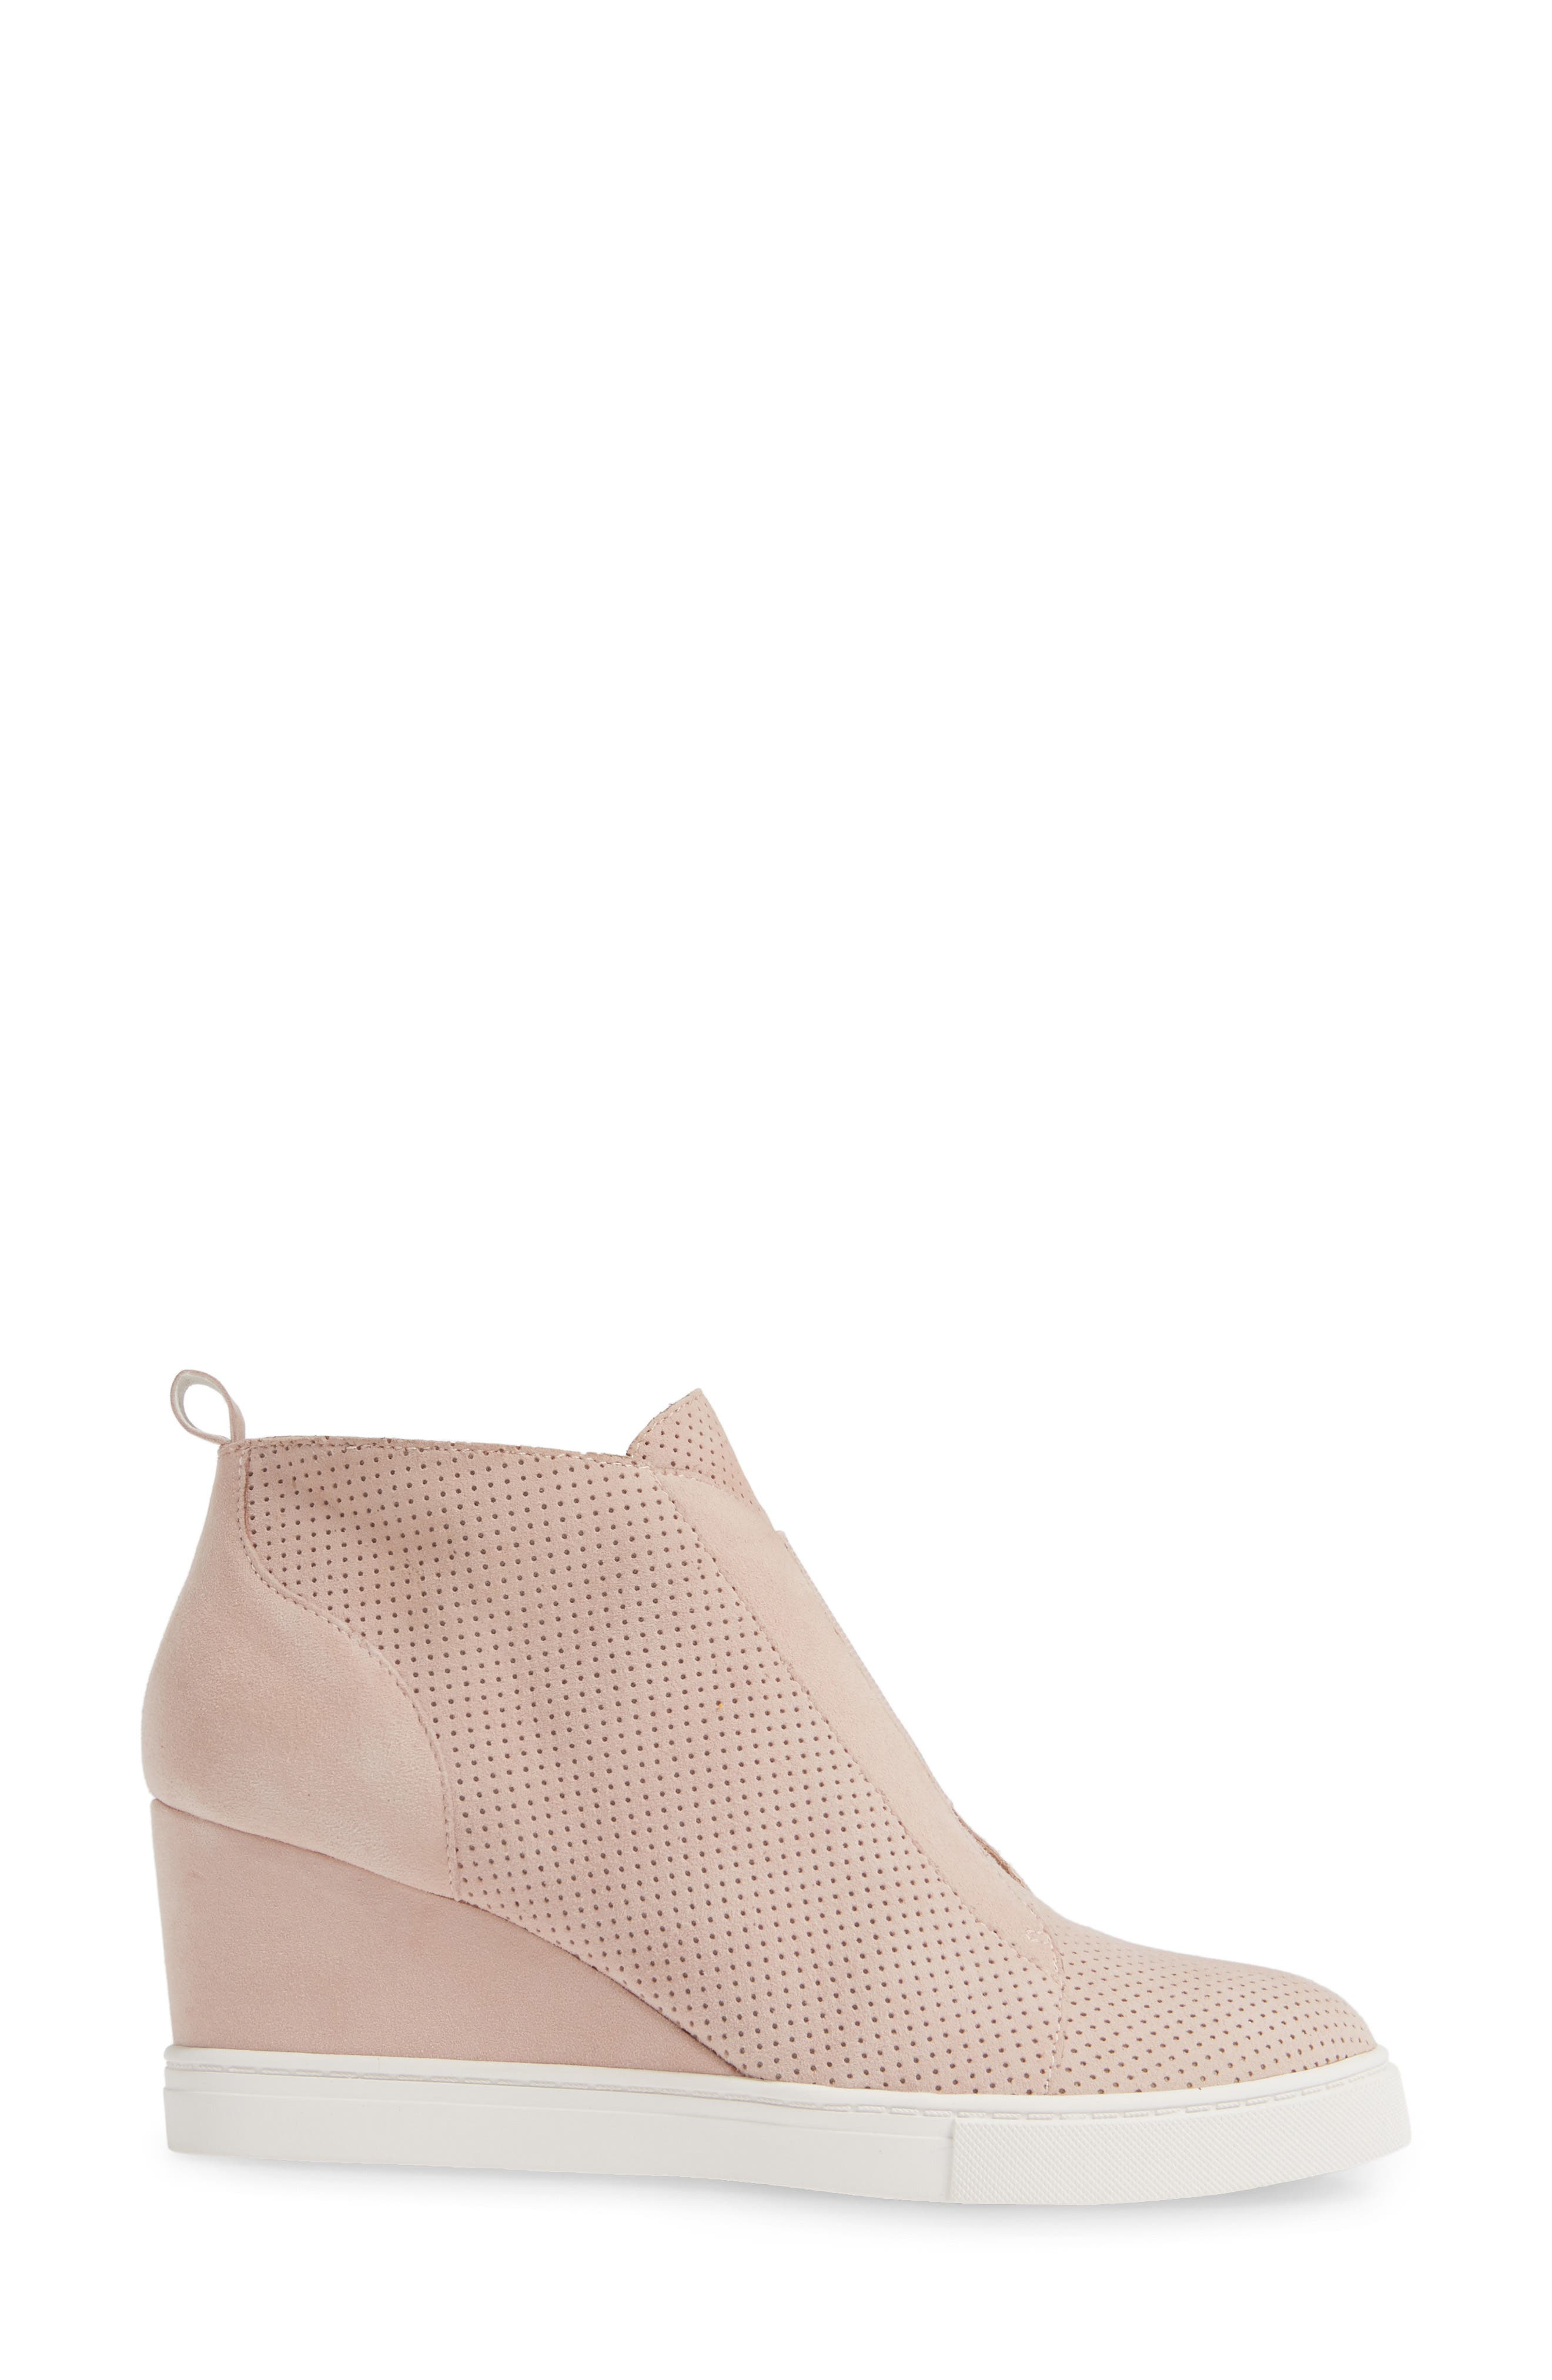 LINEA PAOLO, Felicia Wedge Bootie, Alternate thumbnail 3, color, BLUSH PERFORATED SUEDE